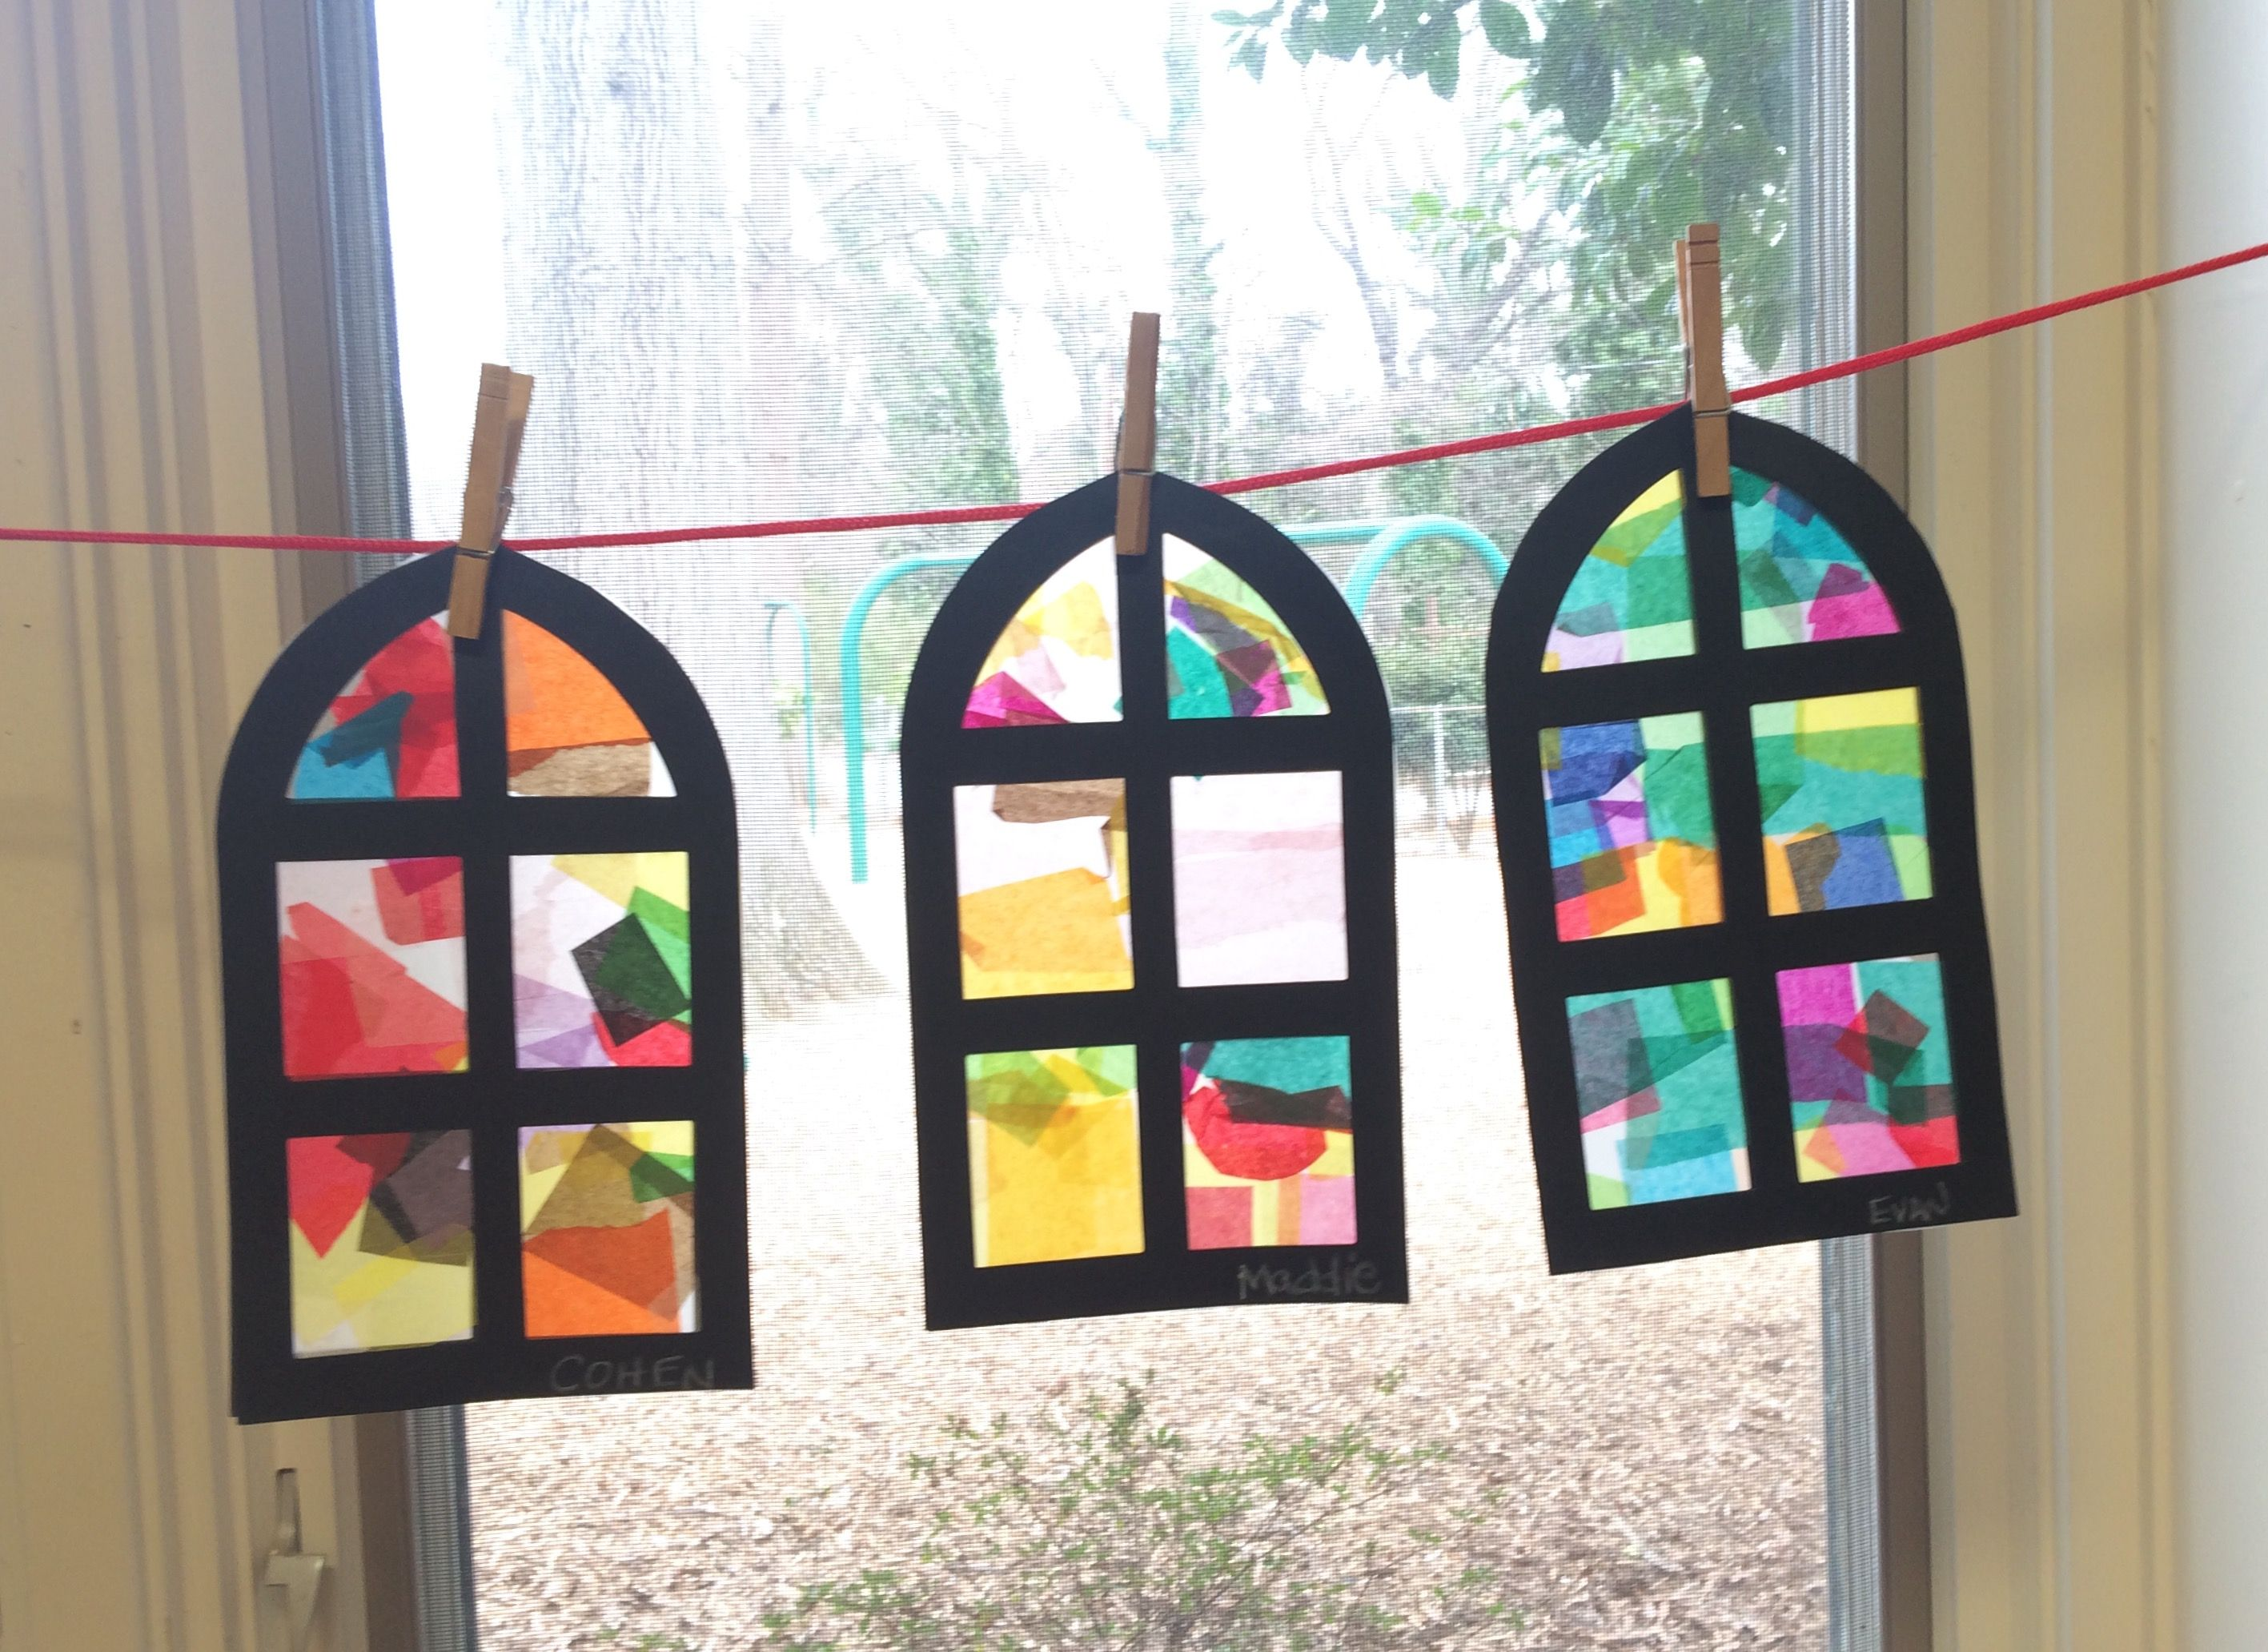 Stain Gl Church Window Craft Used Colored Tissue Paper On Sticky Contact Is From Ellison Dye Cut Machine